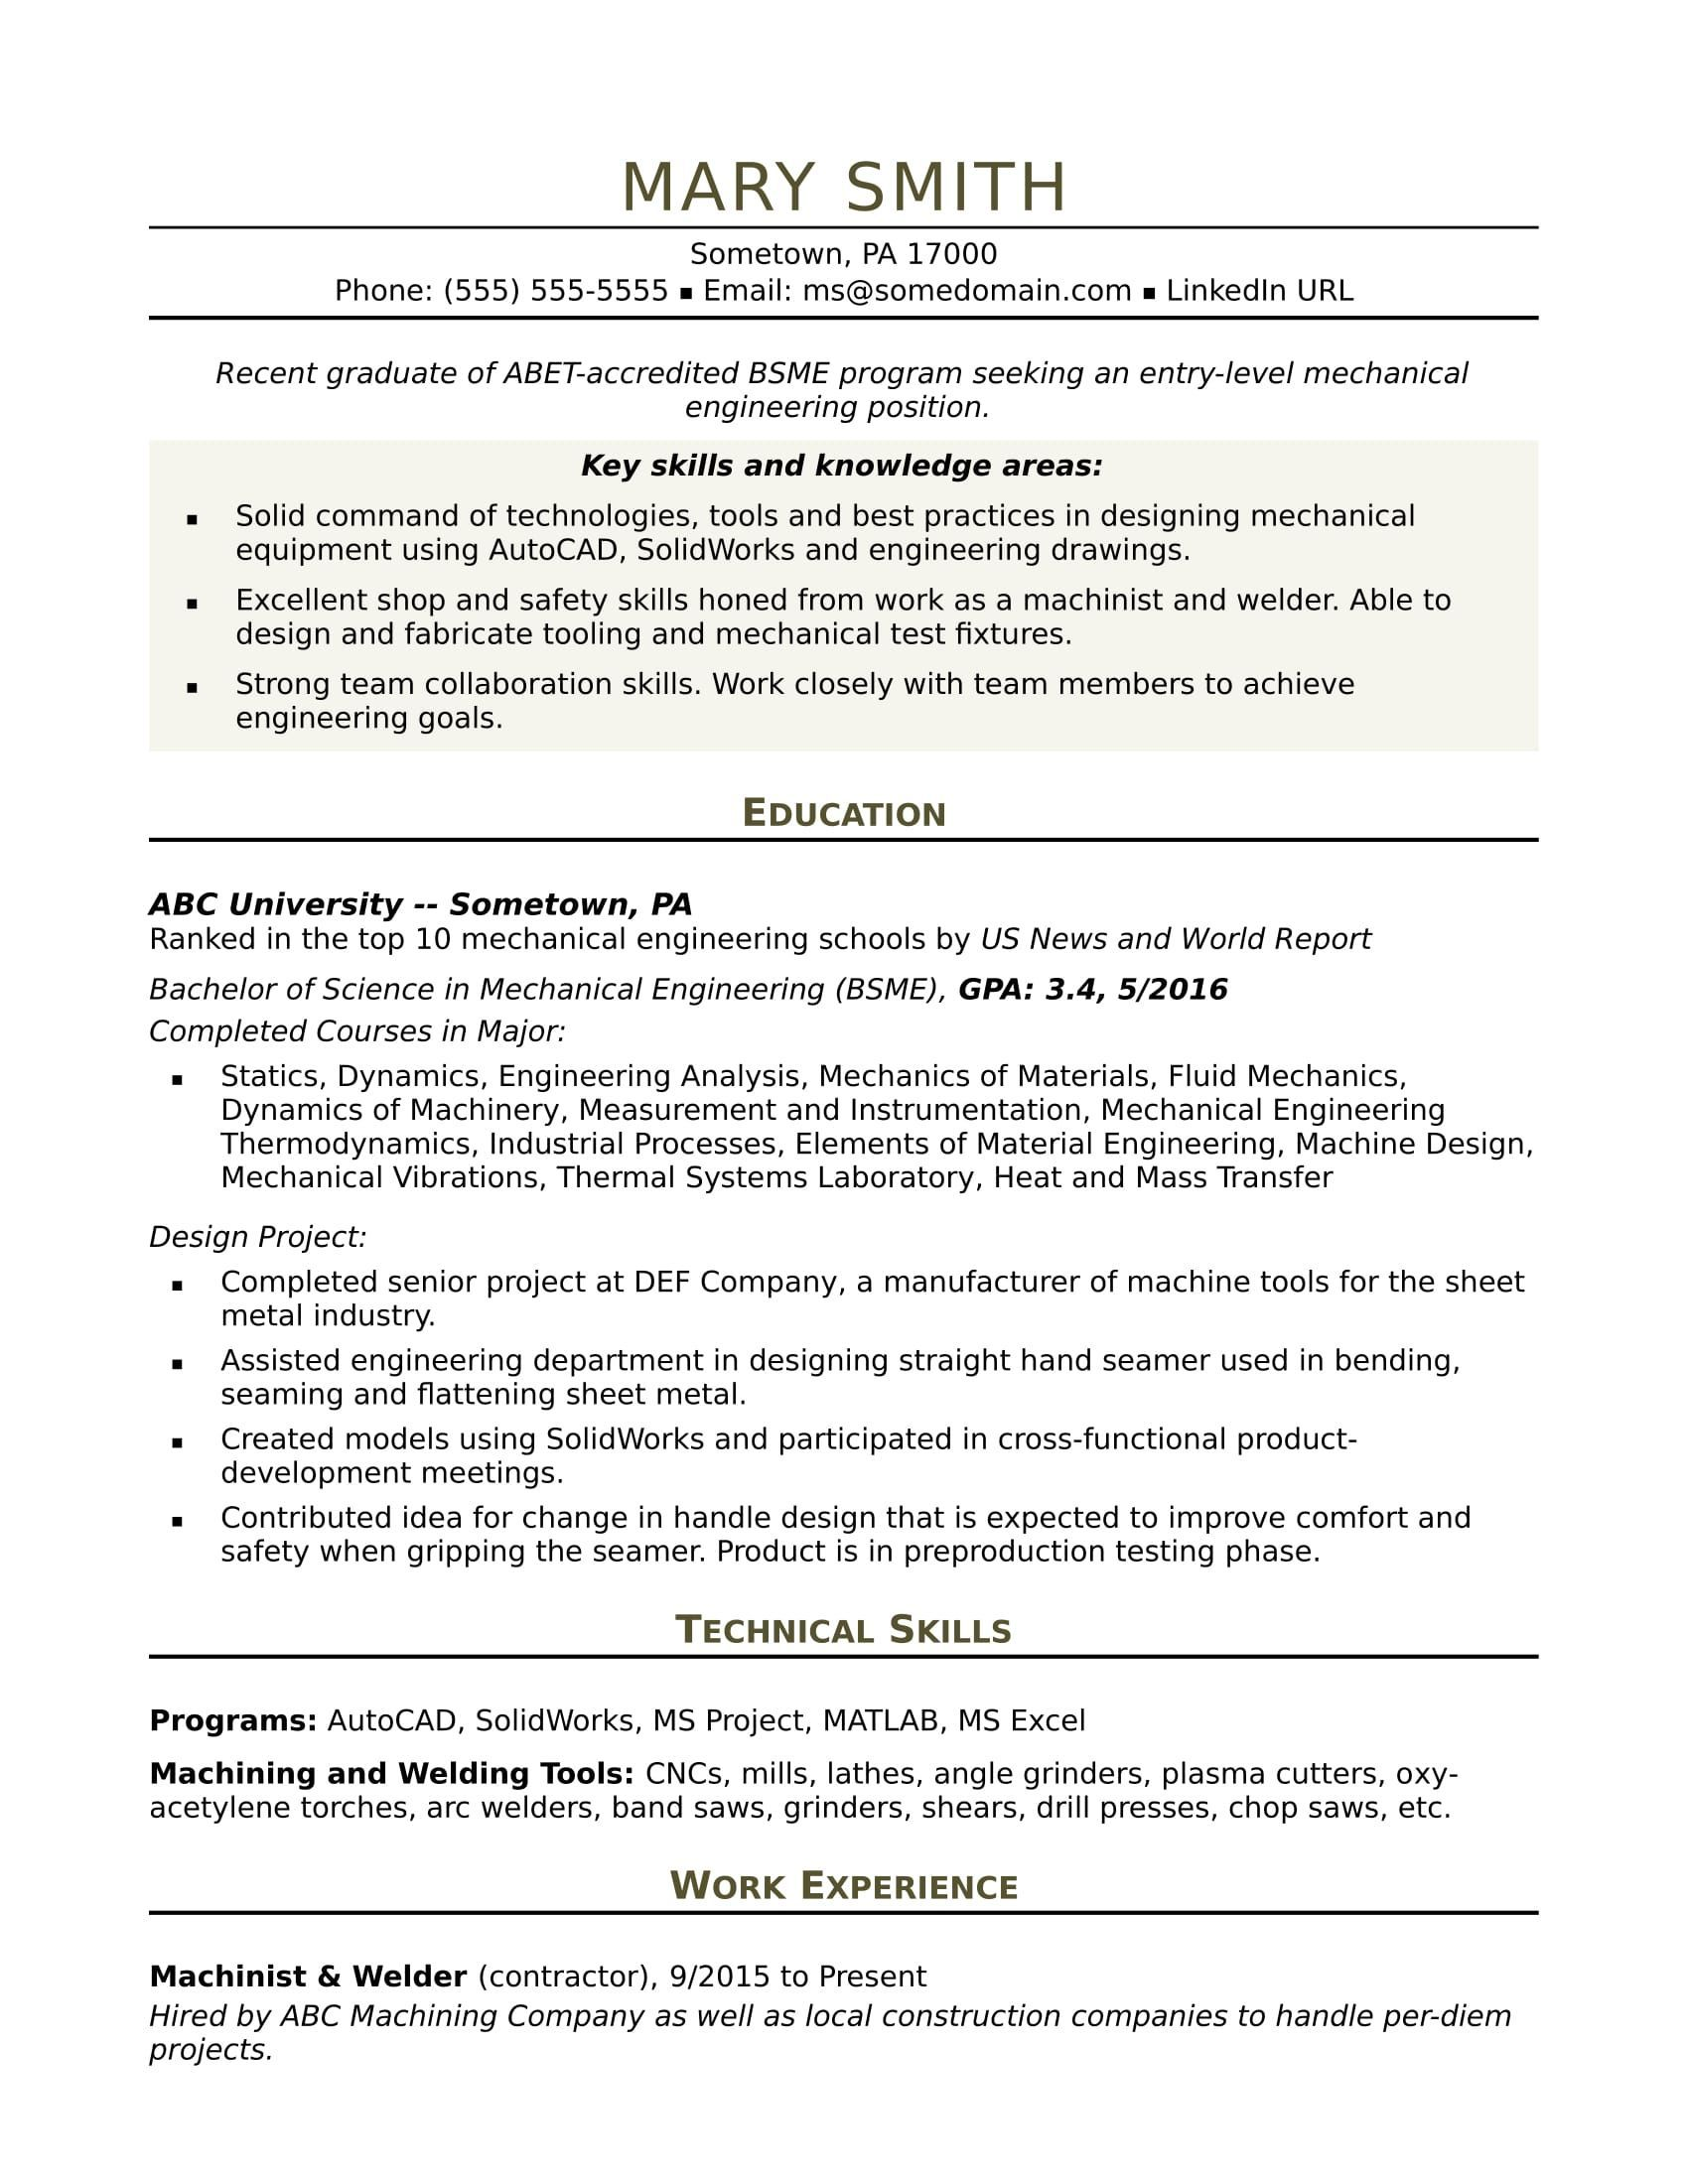 Grinder Sample Resumes Delectable Sample Resume For An Entrylevel Mechanical Engineer .